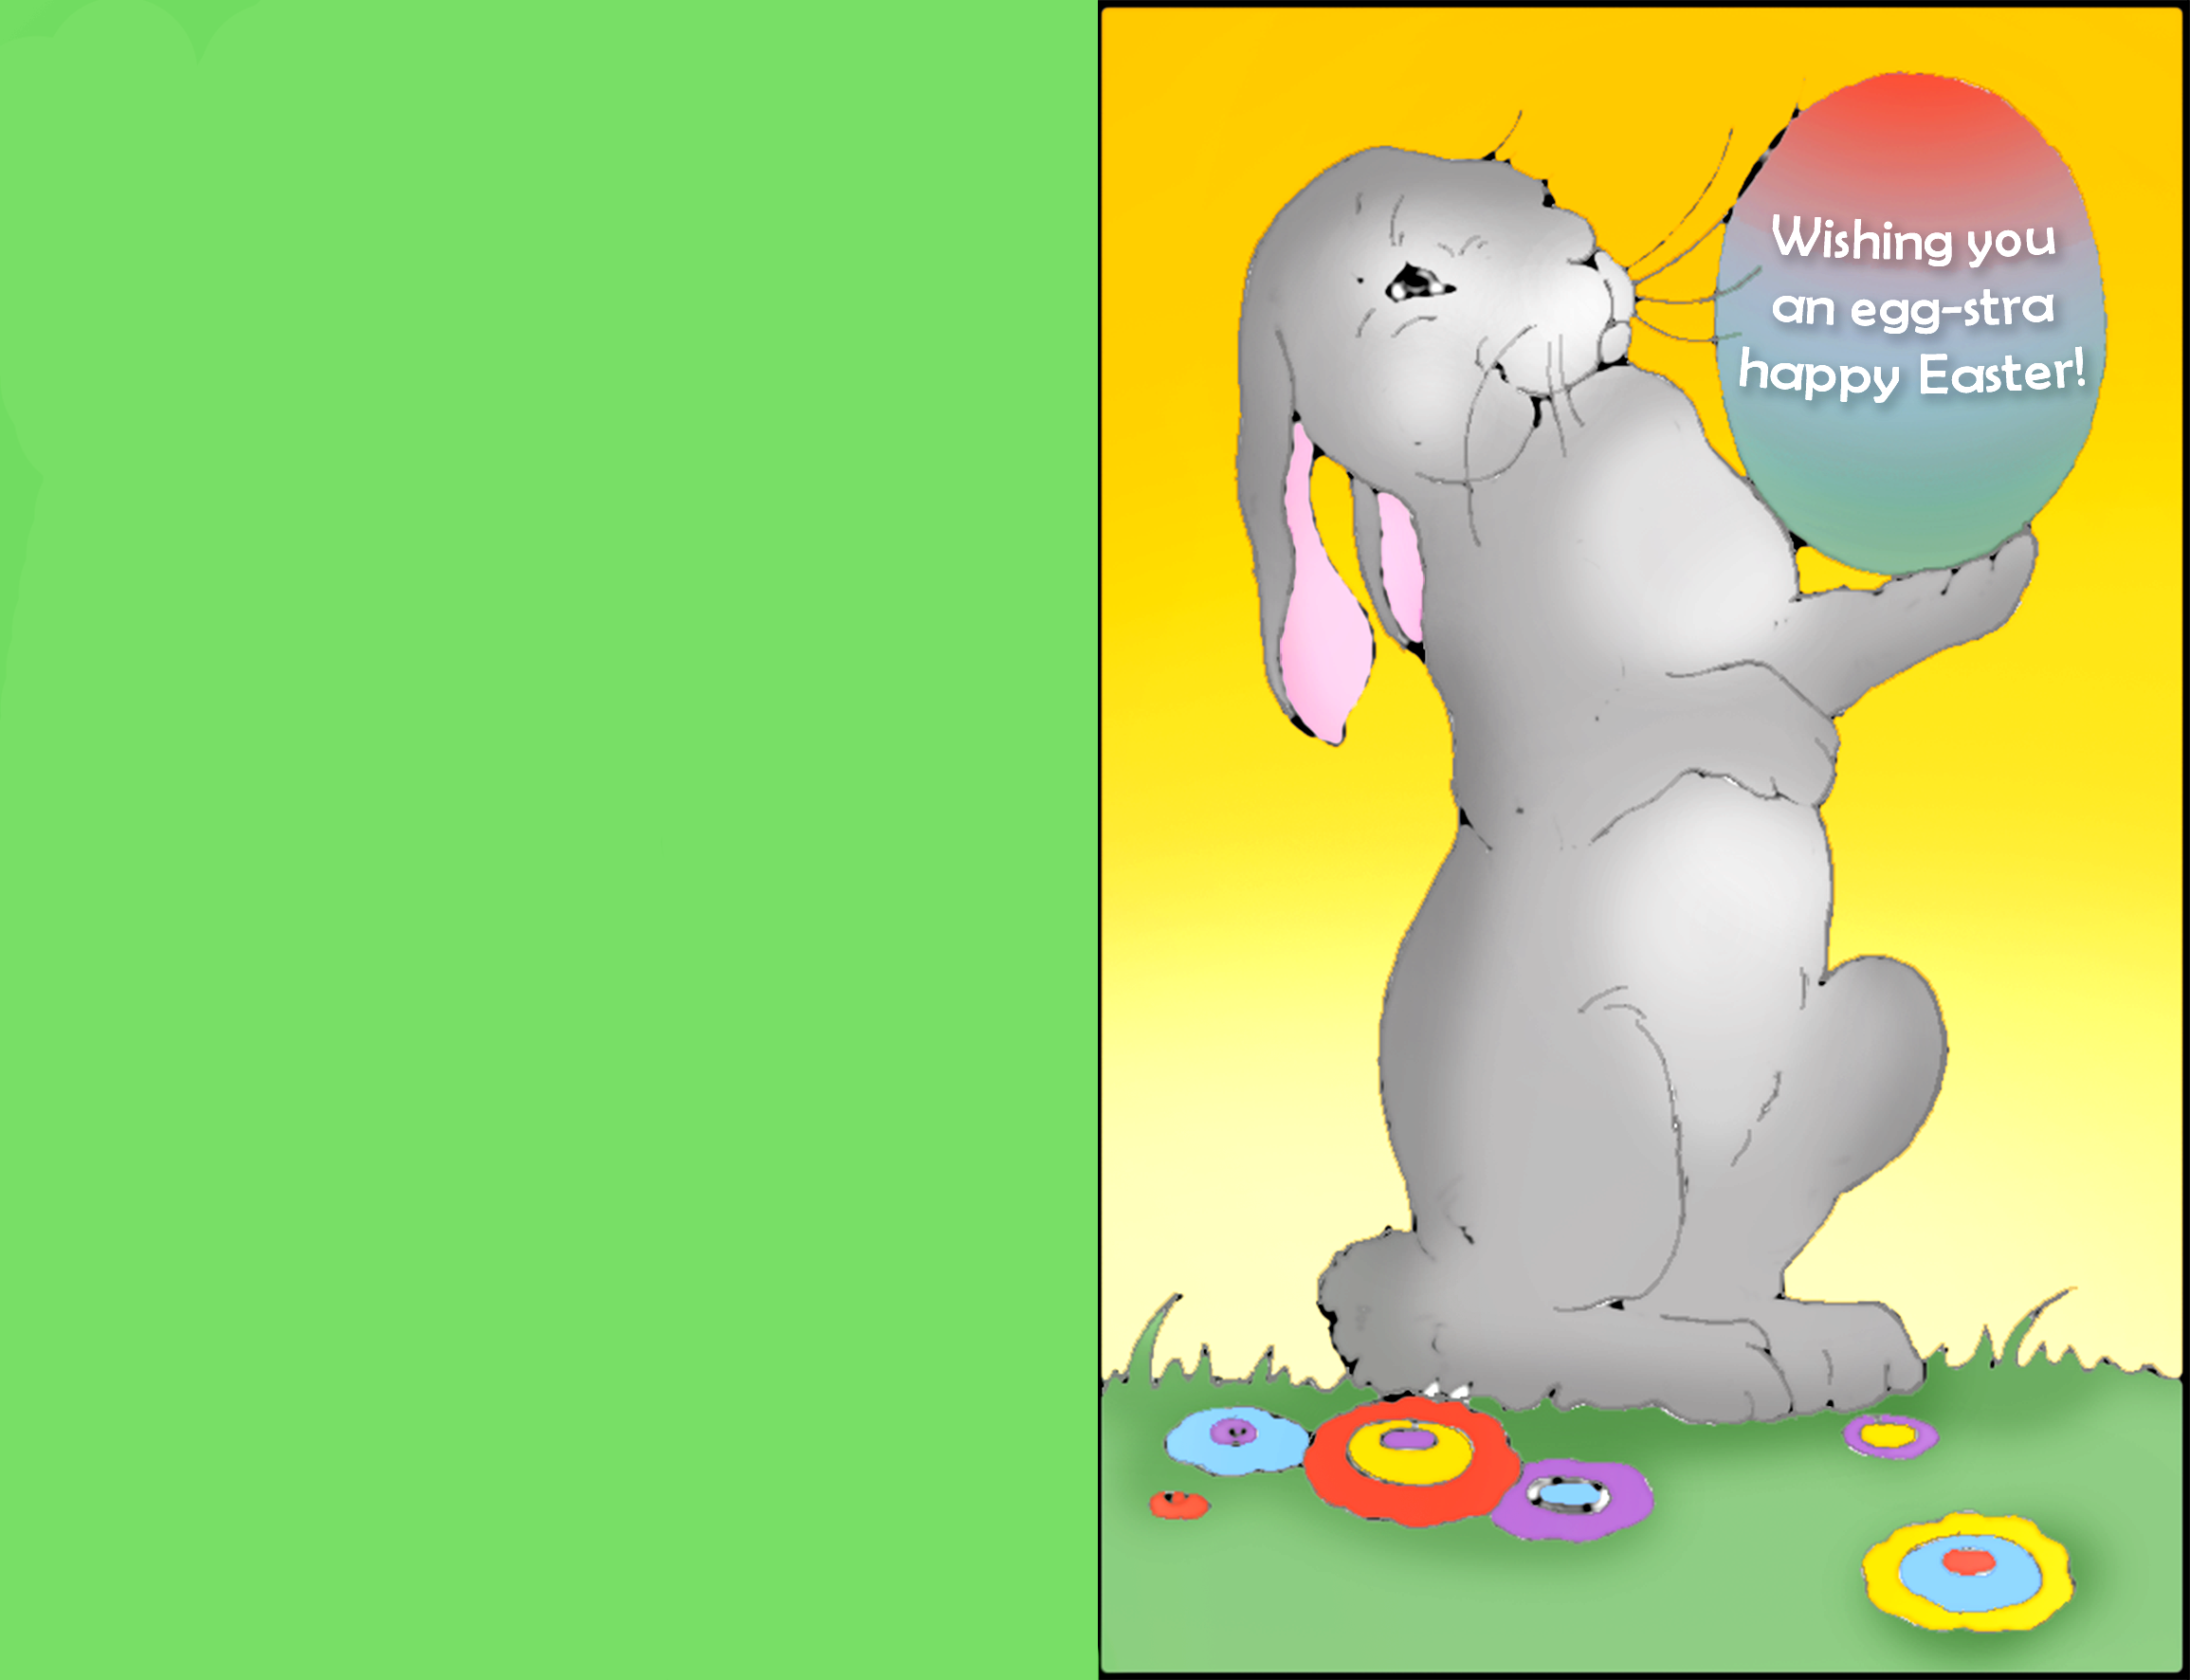 Happy Easter greeting card for kids.